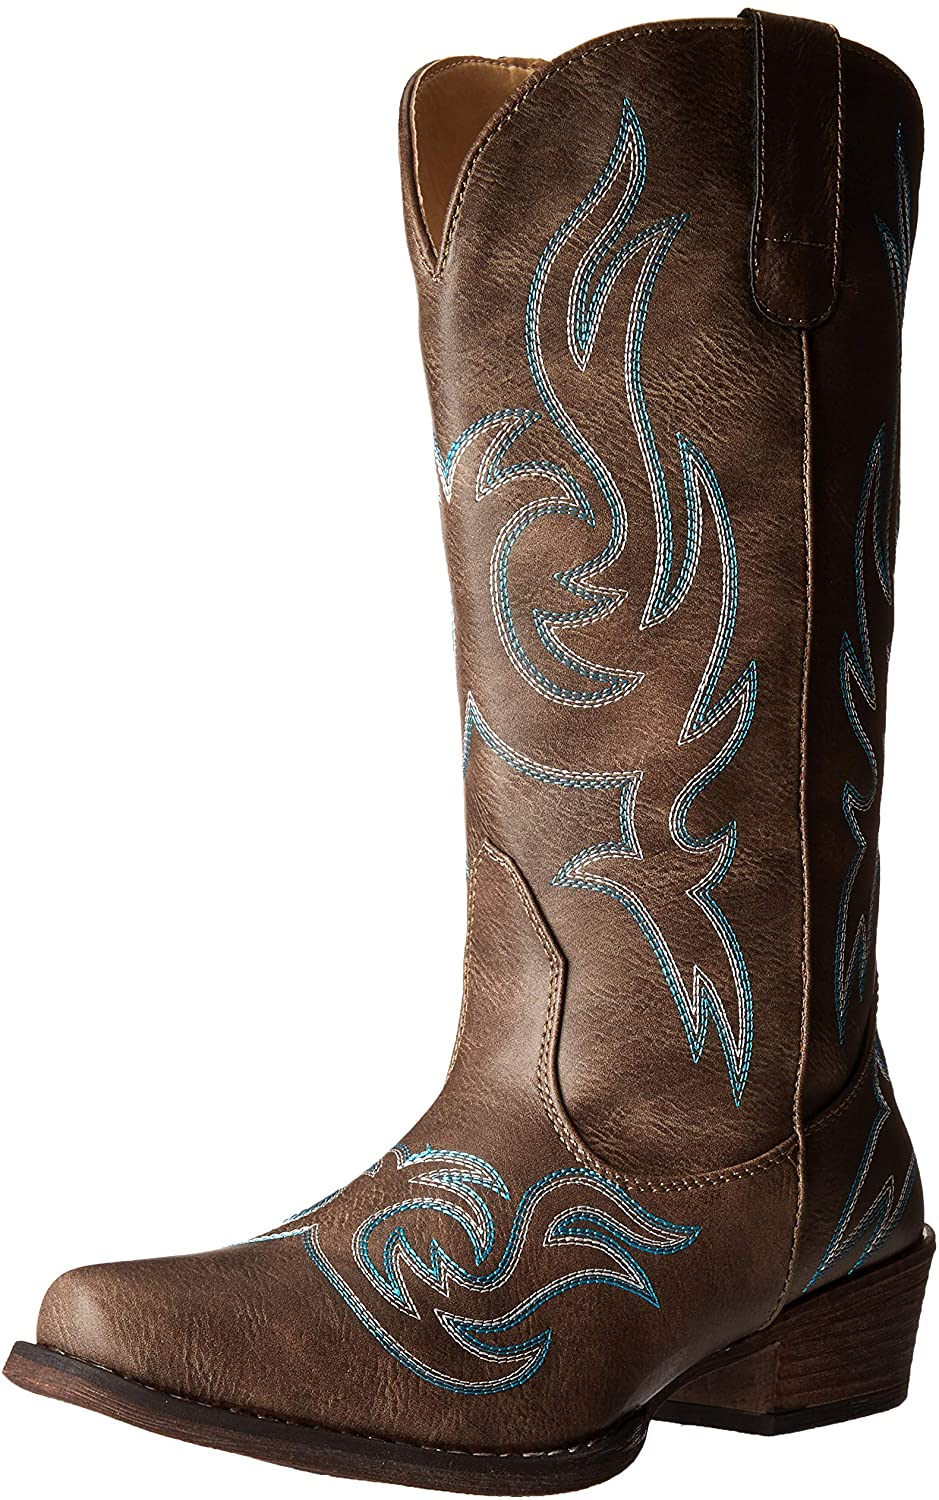 Womens Western Cowgirl Cowboy Boot, Reno Snip Square Toe by Silver Canyon